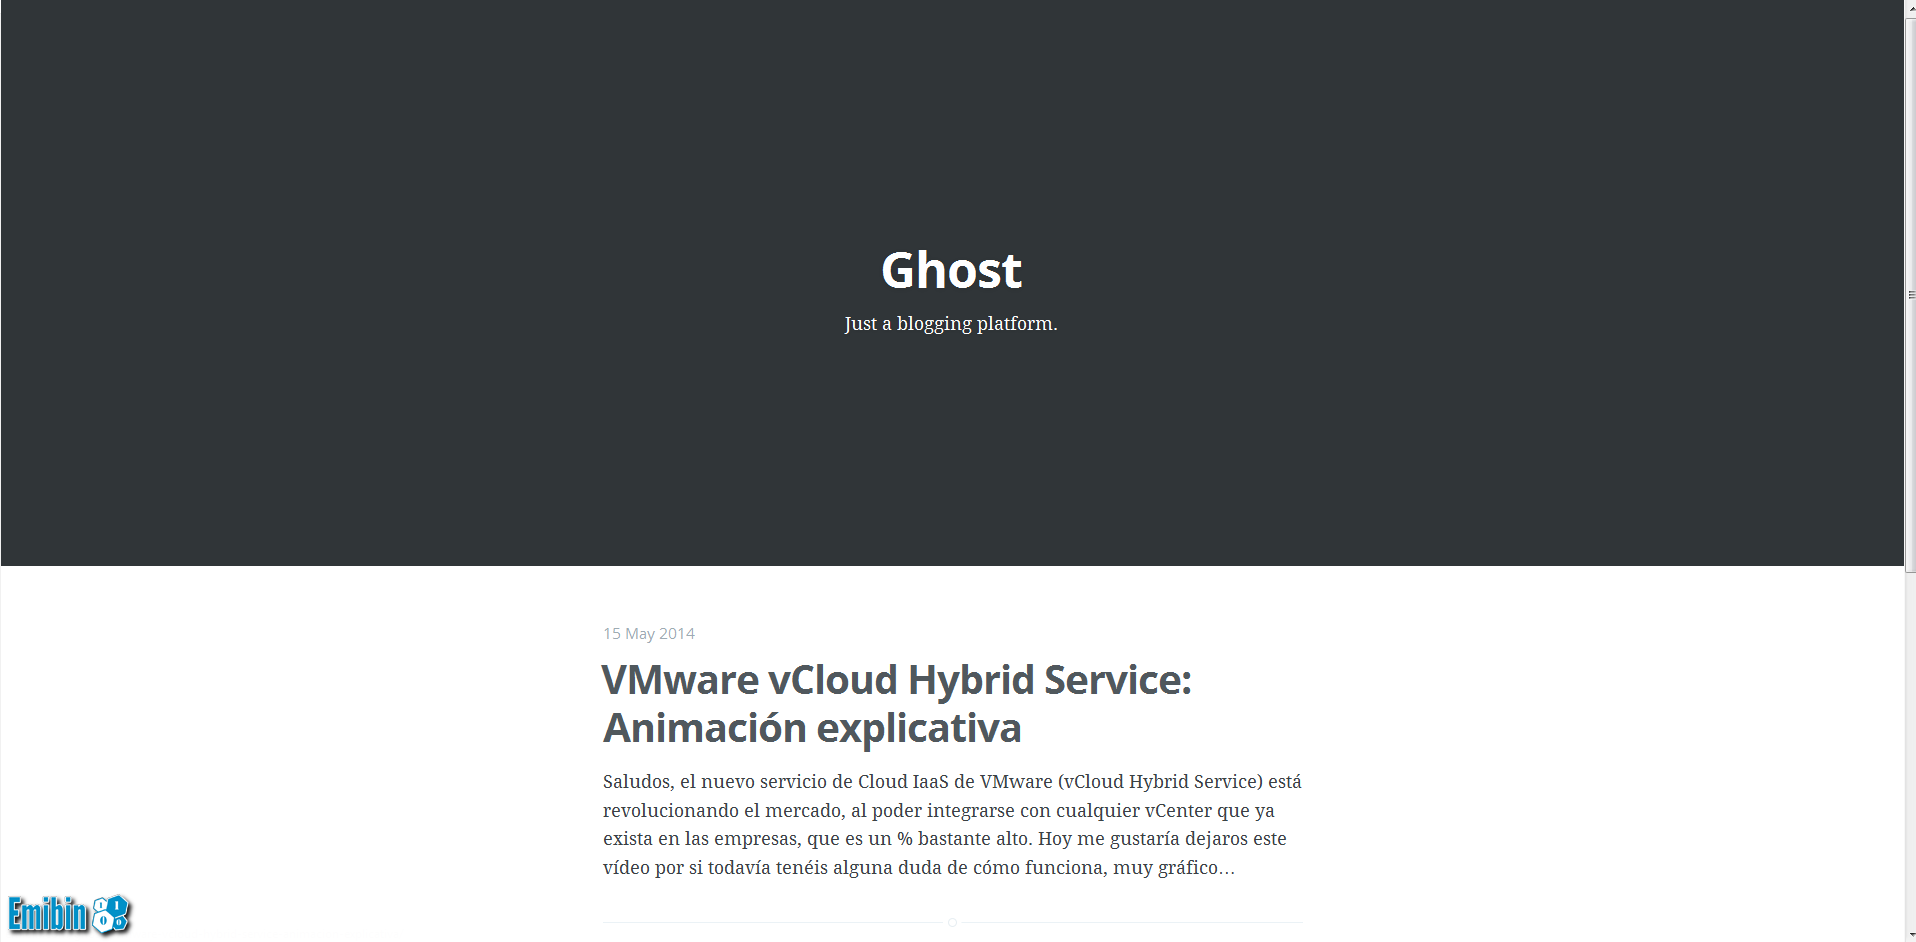 cpanel-ghost-021